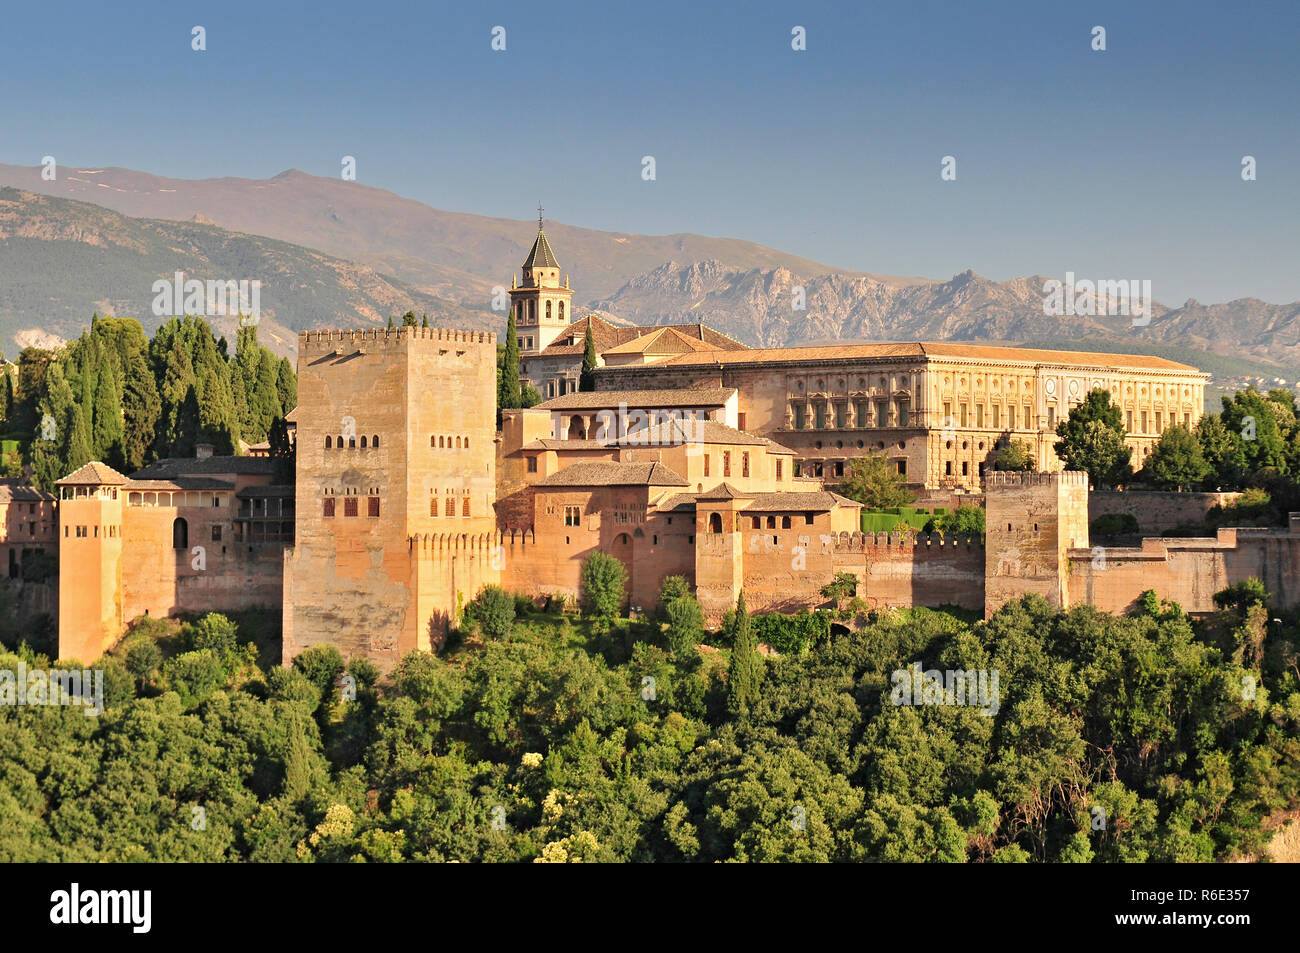 Spain Andalusia Granada View From Patio De La Acequia To Alhambra Overall View Of Alcazaba City Castle On The Hill Sabikah - Stock Image